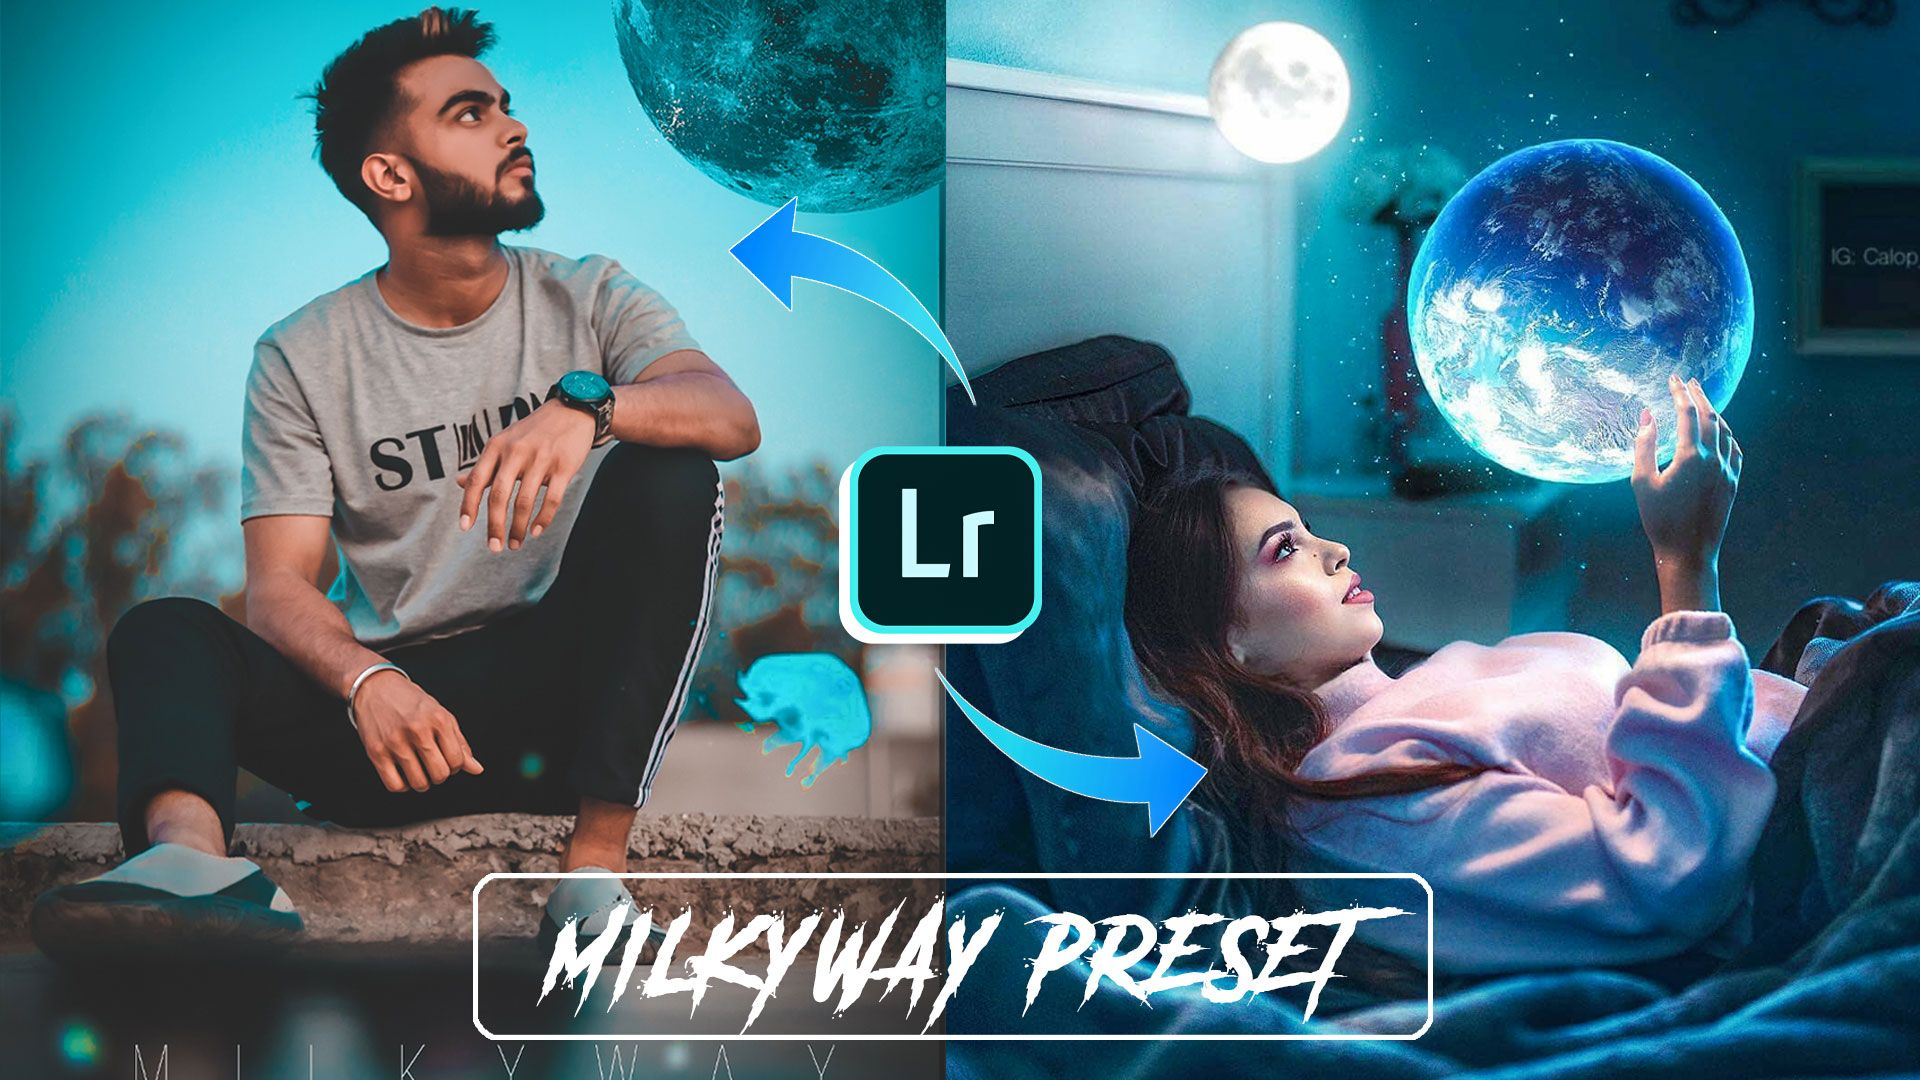 hrer you can Ritesh creation Milkyway Preset Download and.